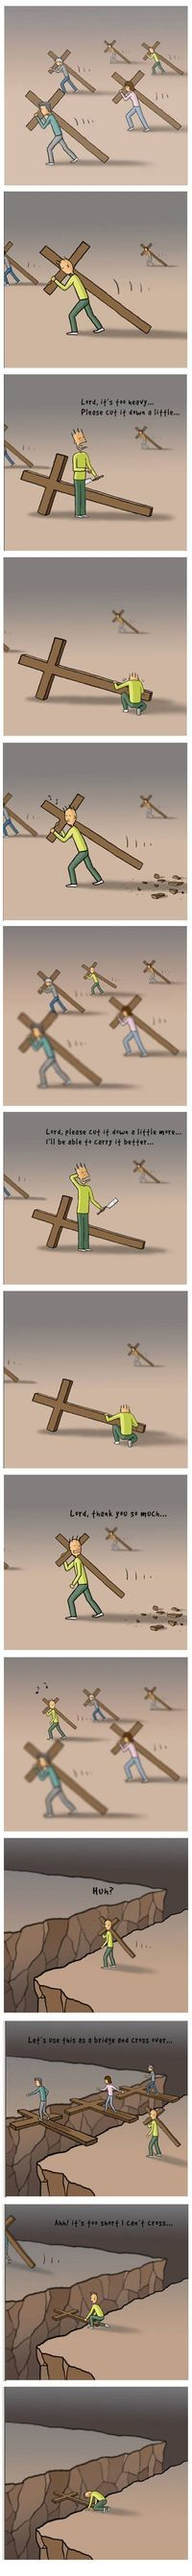 """Luke 9:23 Then he said to them all: """"Whoever wants to be my disciple must deny themselves and take up their cross daily and follow me."""